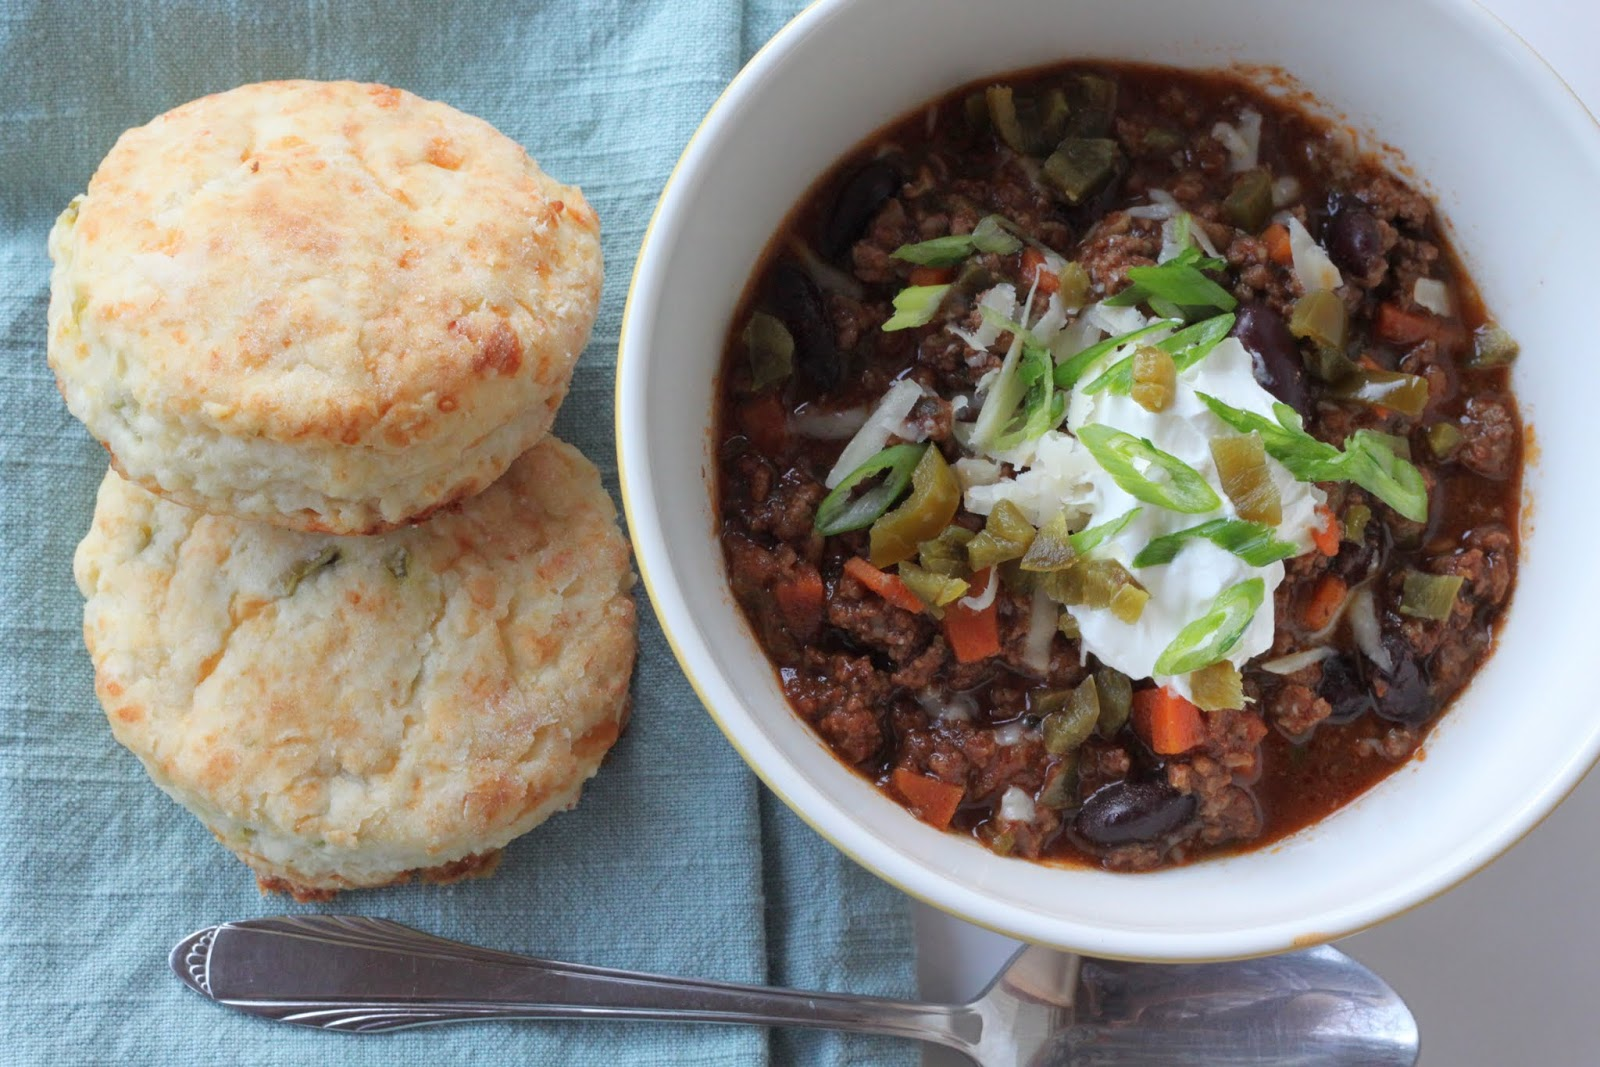 Best Beef Chili: Gourmet's Chili Con Carne with Sour Cream Cheddar ...